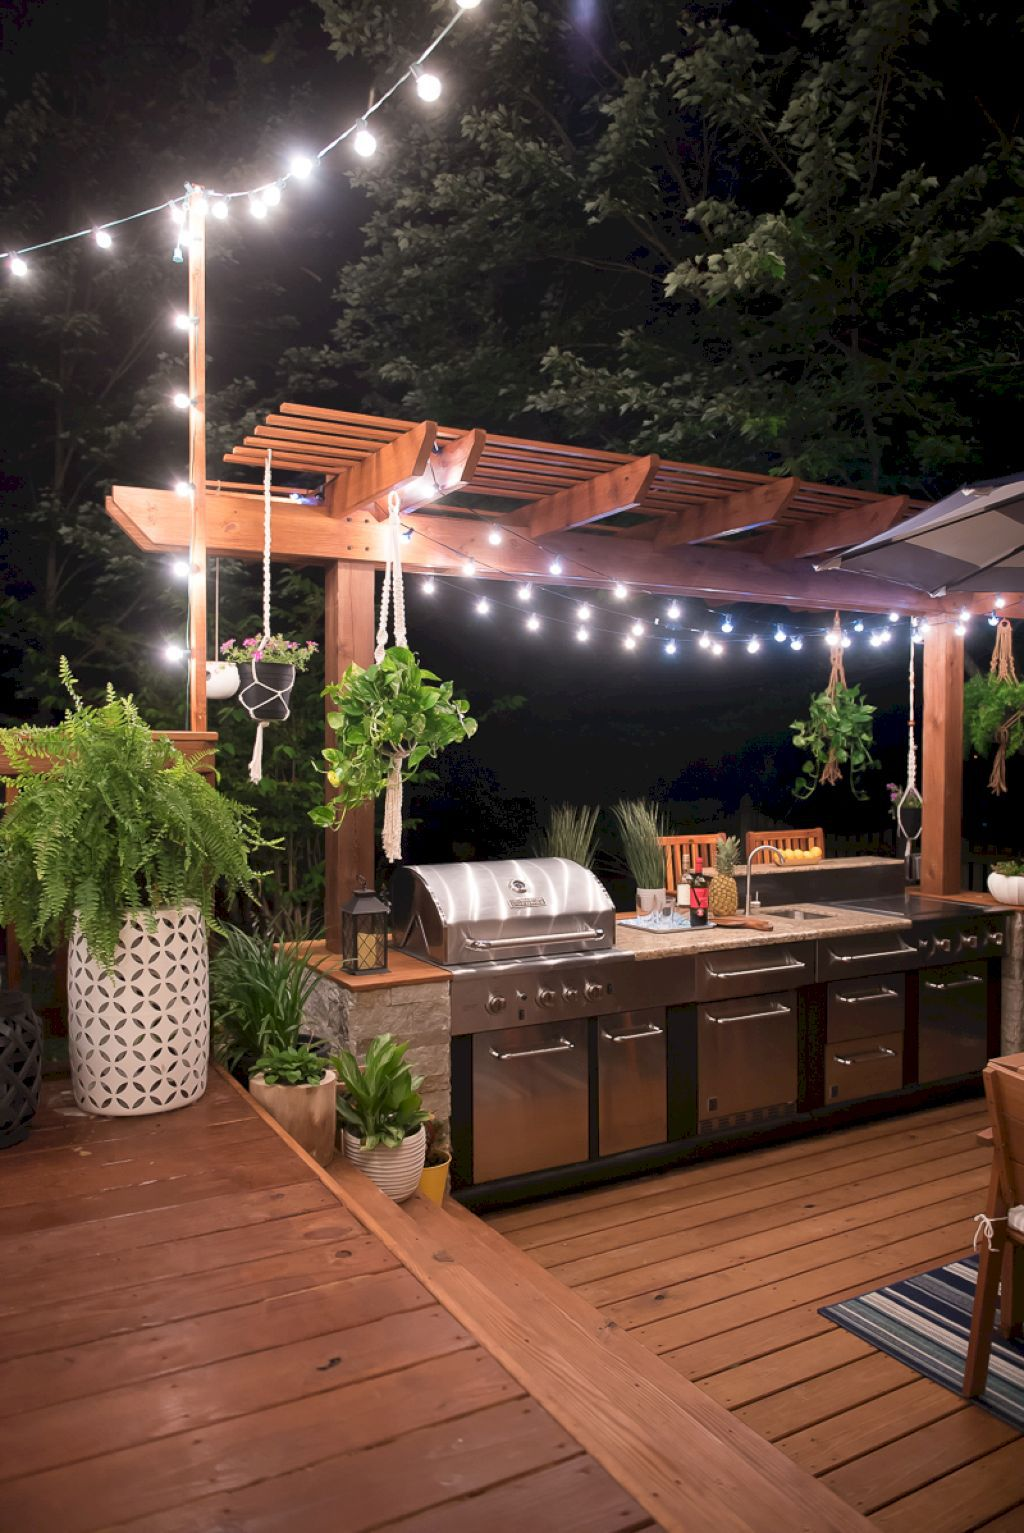 30 Best Outdoor Kitchen Design Ideas on Diy Backyard Remodel  id=46228